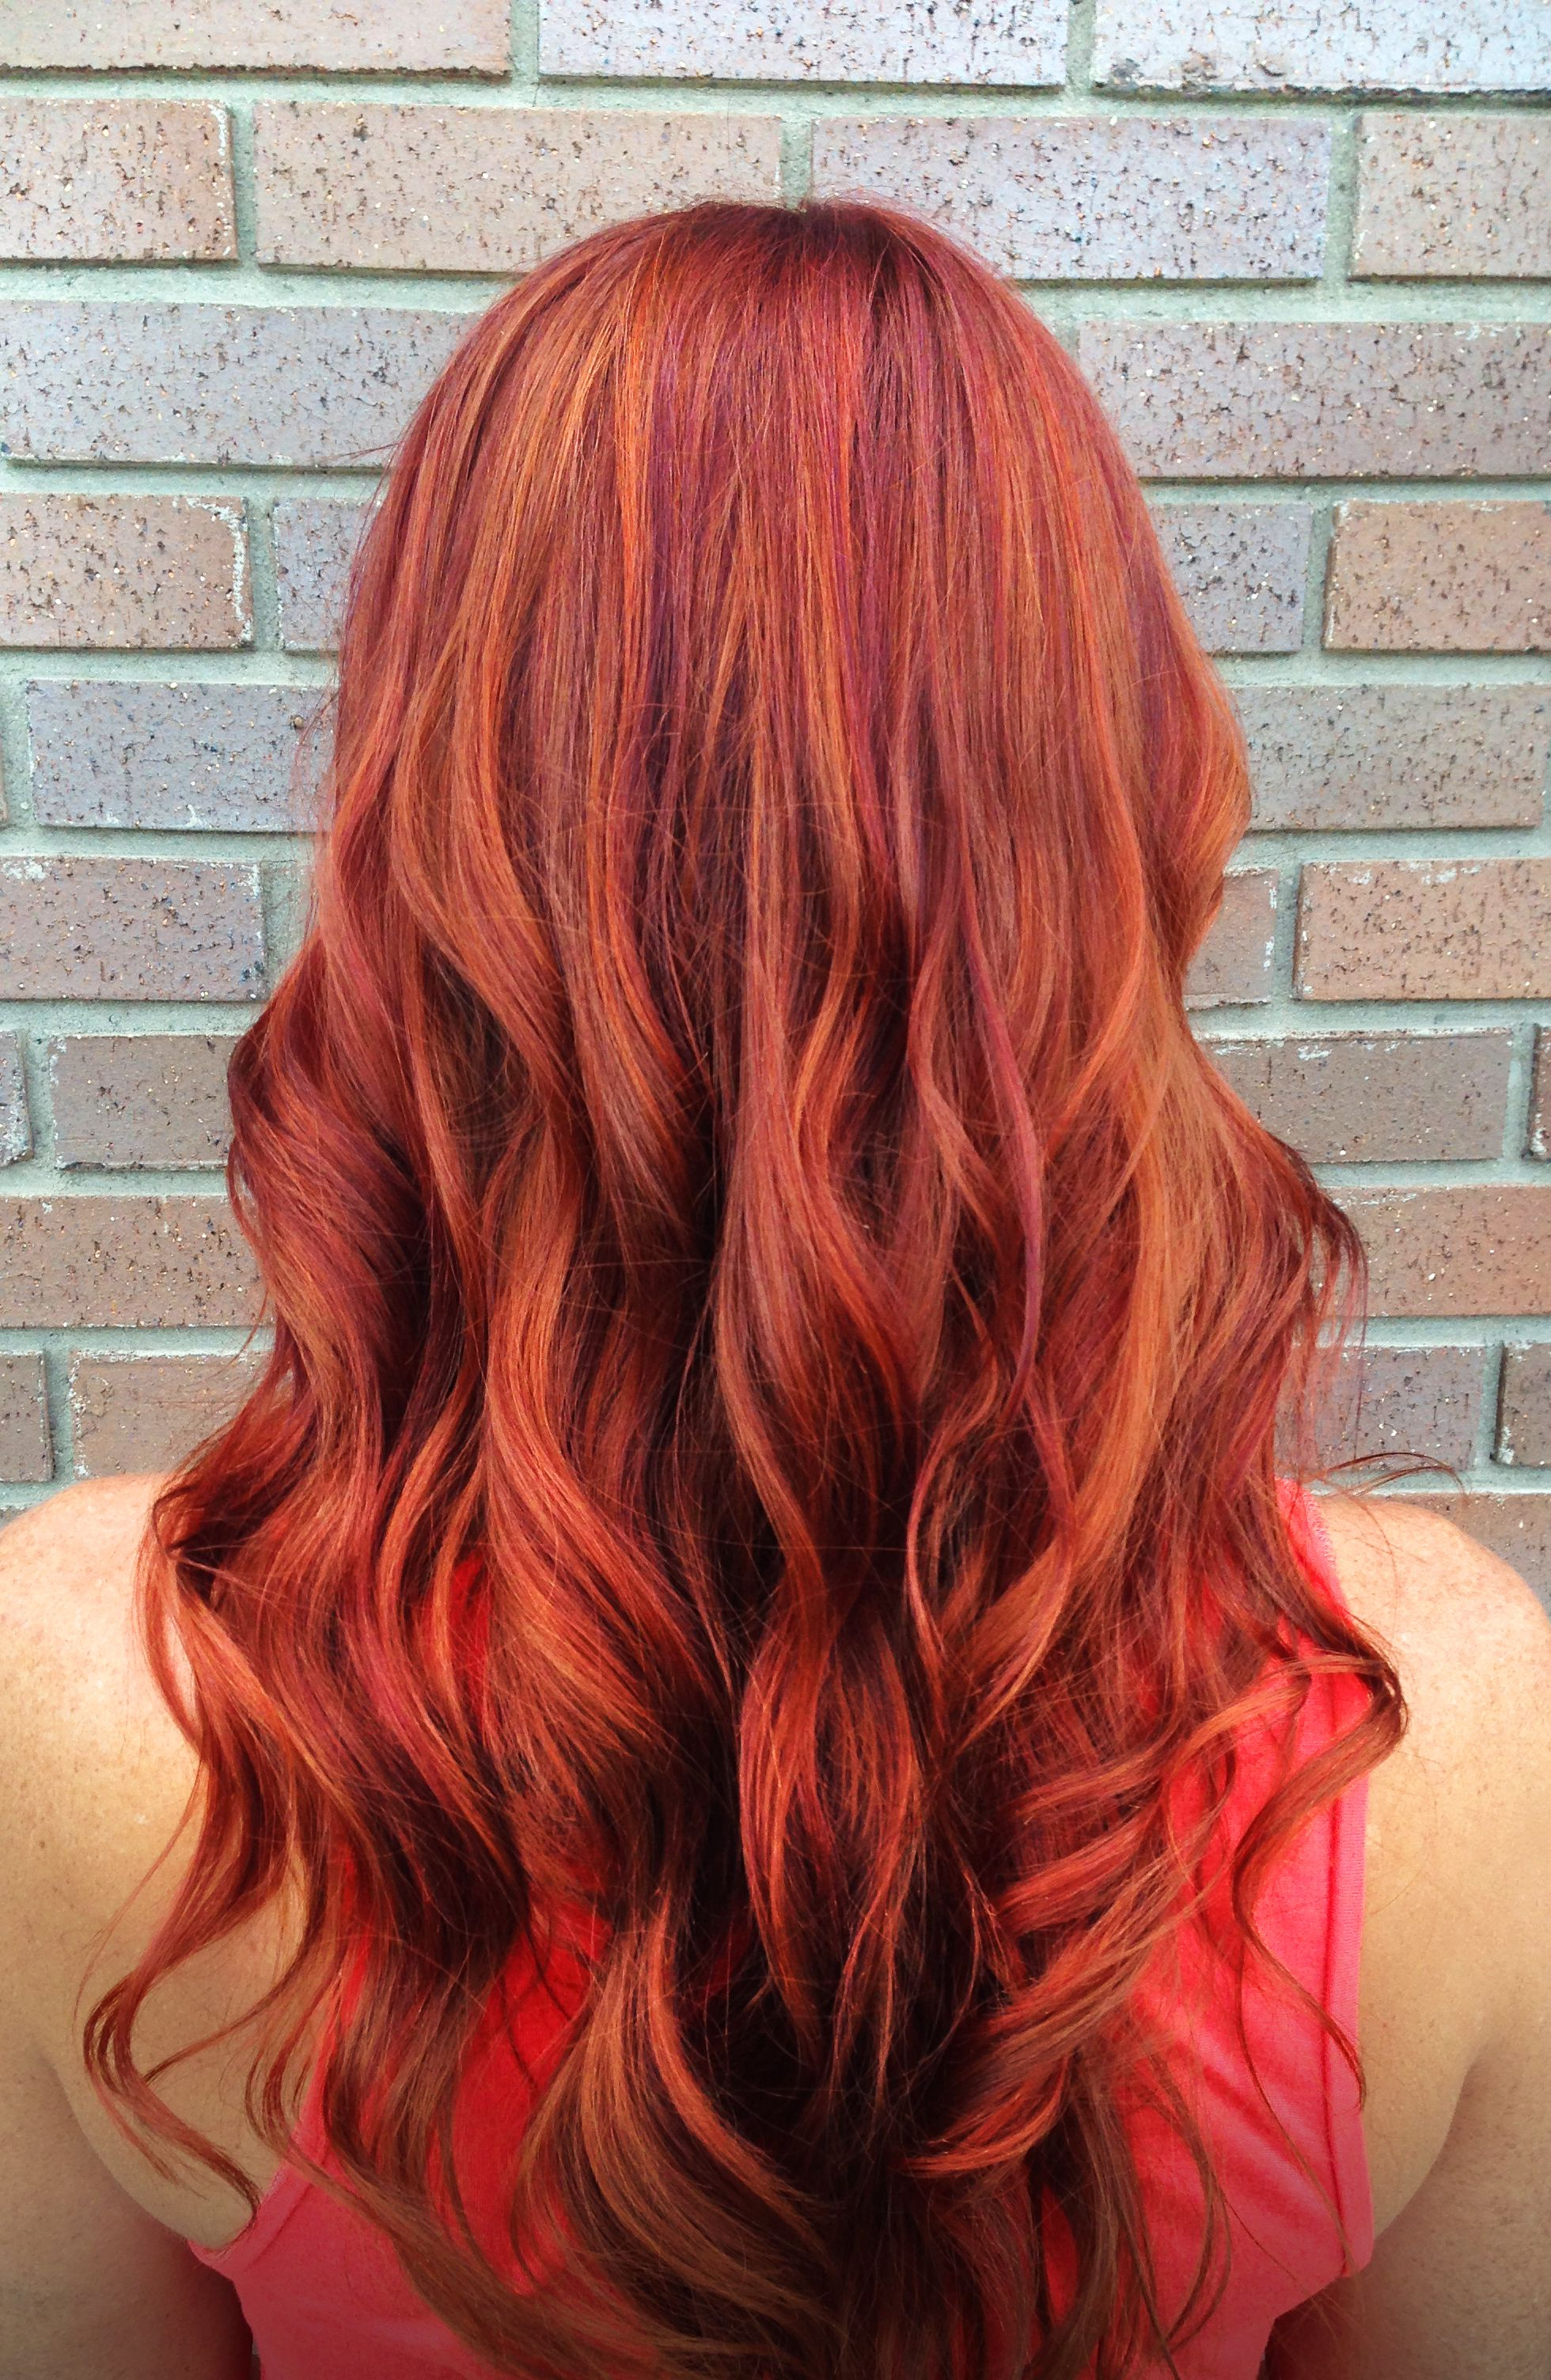 Pravana 7cc Carli Red Orange Hair Color Red Hair